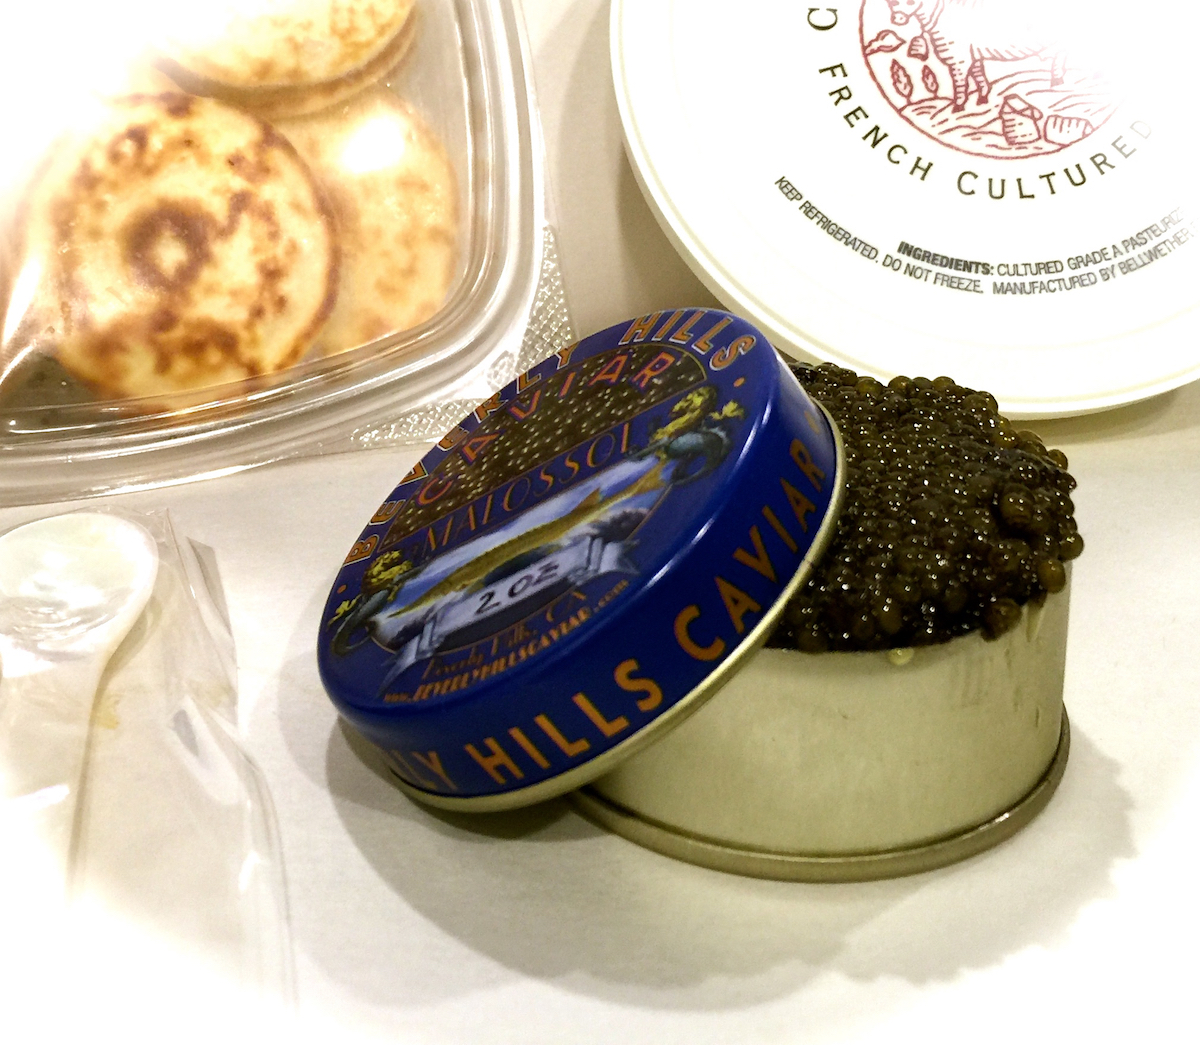 Online Caviar Deal in Nebraska Caviar Promo in Nebraska caviar deal, caviar promotion, online caviar deal, caviar deals